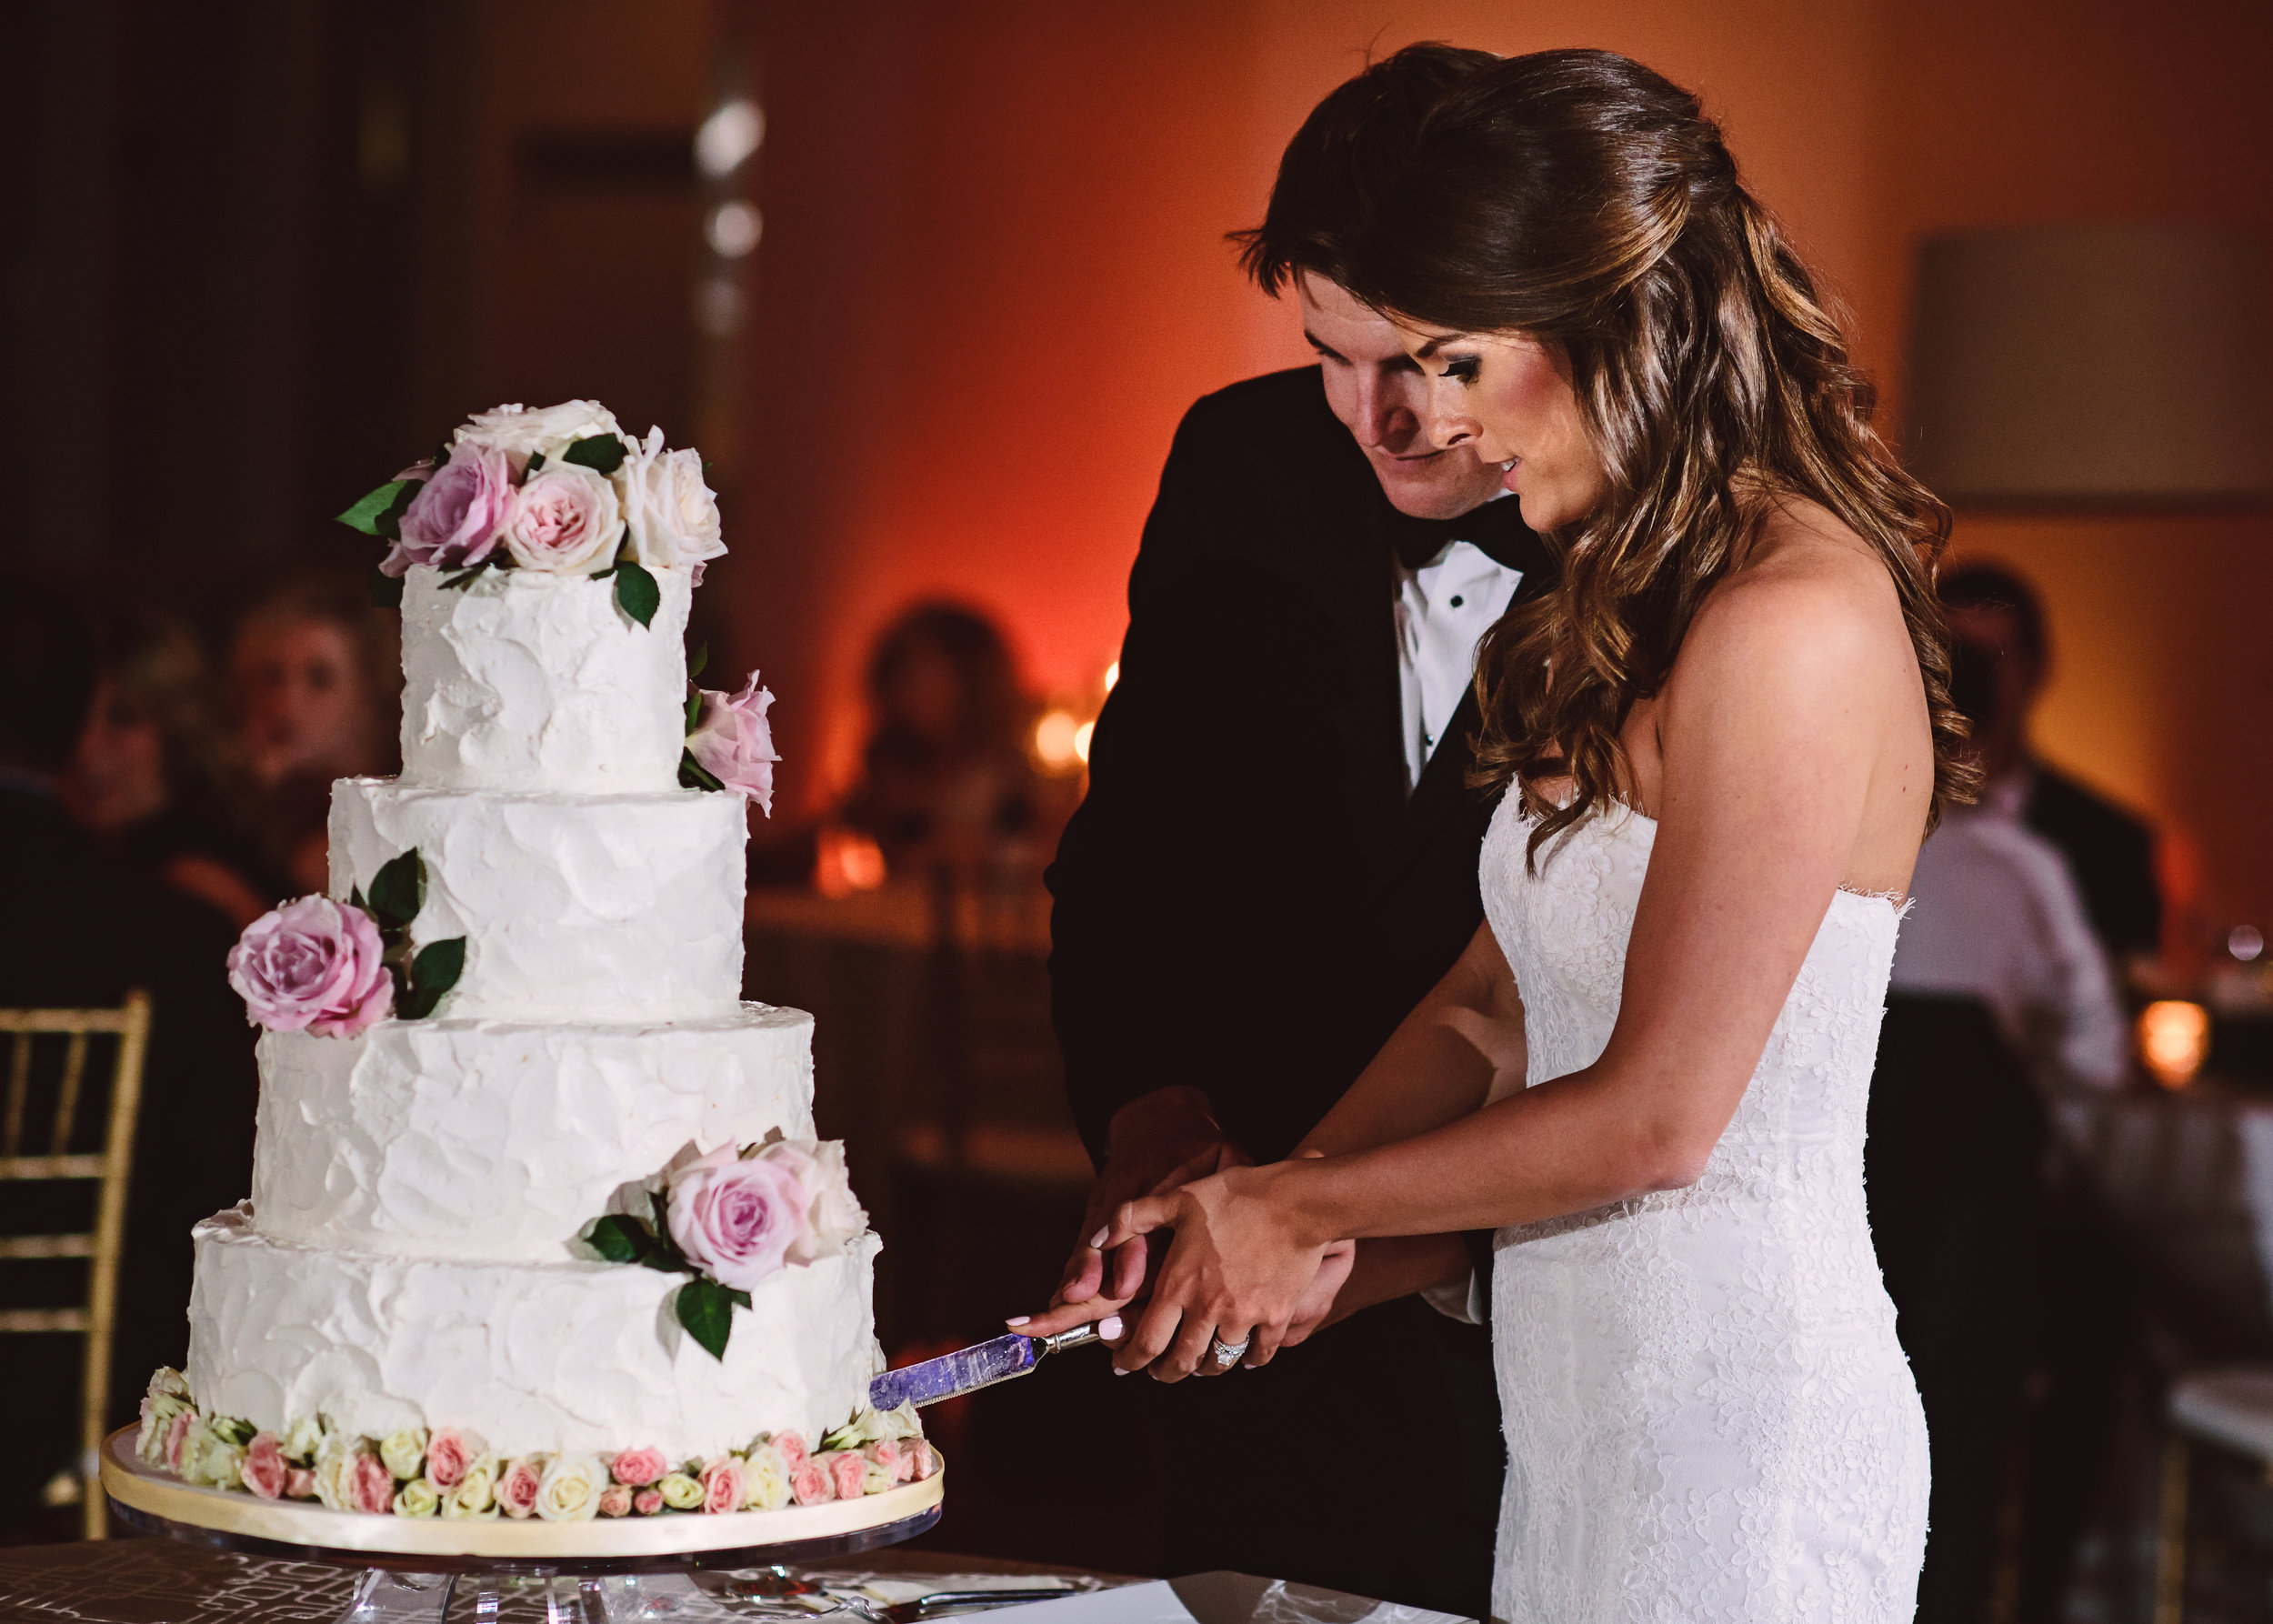 Wedding cake, Textured wedding cake, Wedding cake with flower clusters, Wedding hair style, Half up half down hair style, Mint Museum Uptown wedding in Charlotte, North Carolina by The Graceful Host